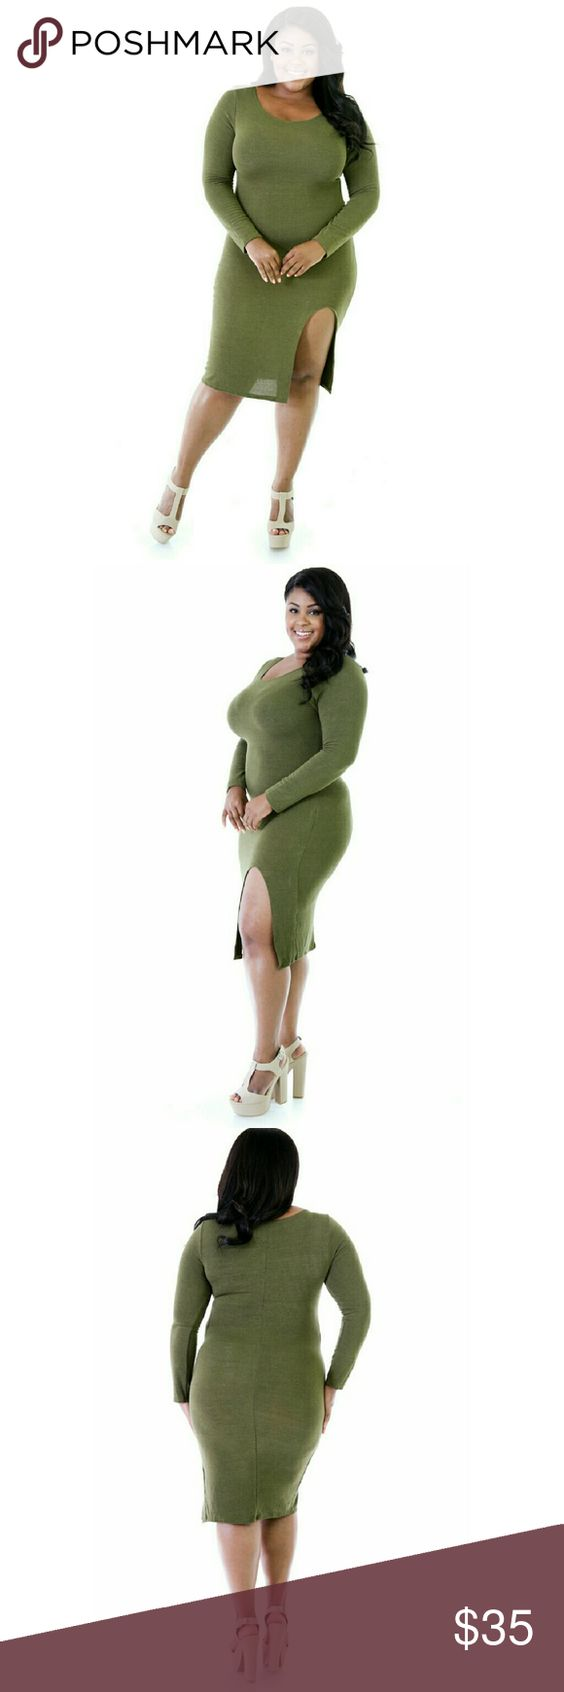 D plus size bodycon dresses and green dress on pinterest